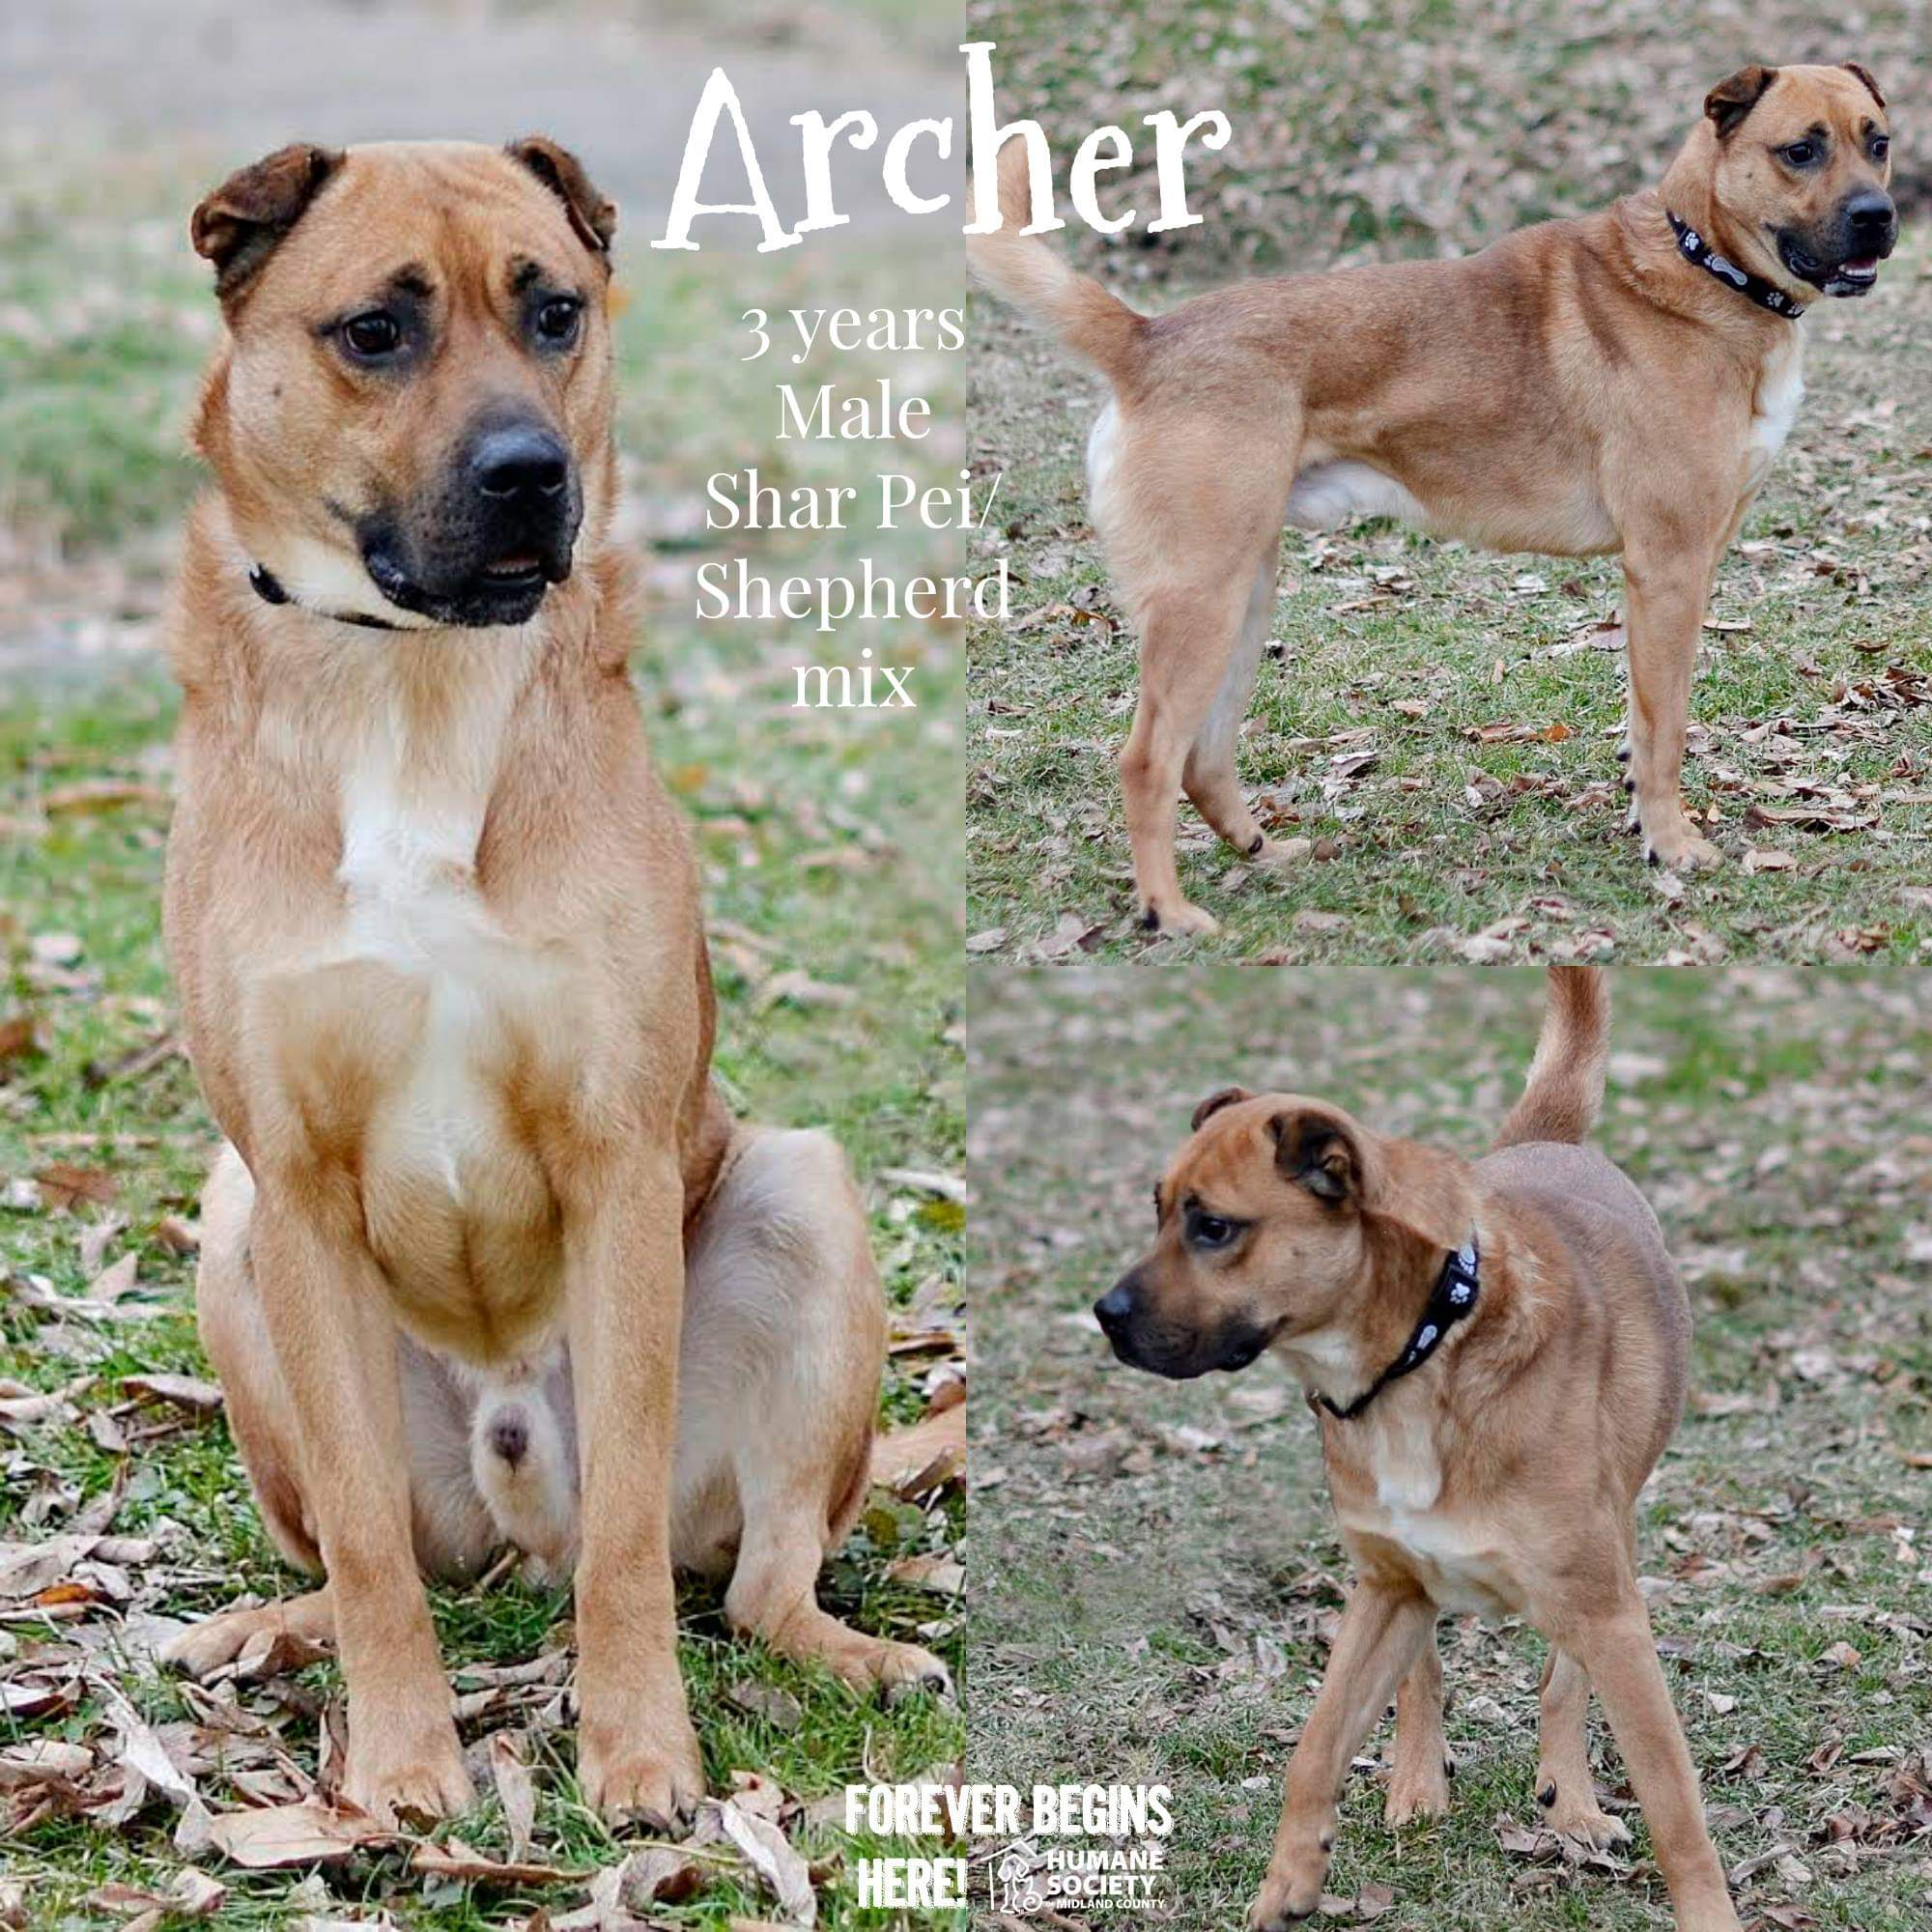 Dog Archer Seeks Home For The Holidays at Humane Society of